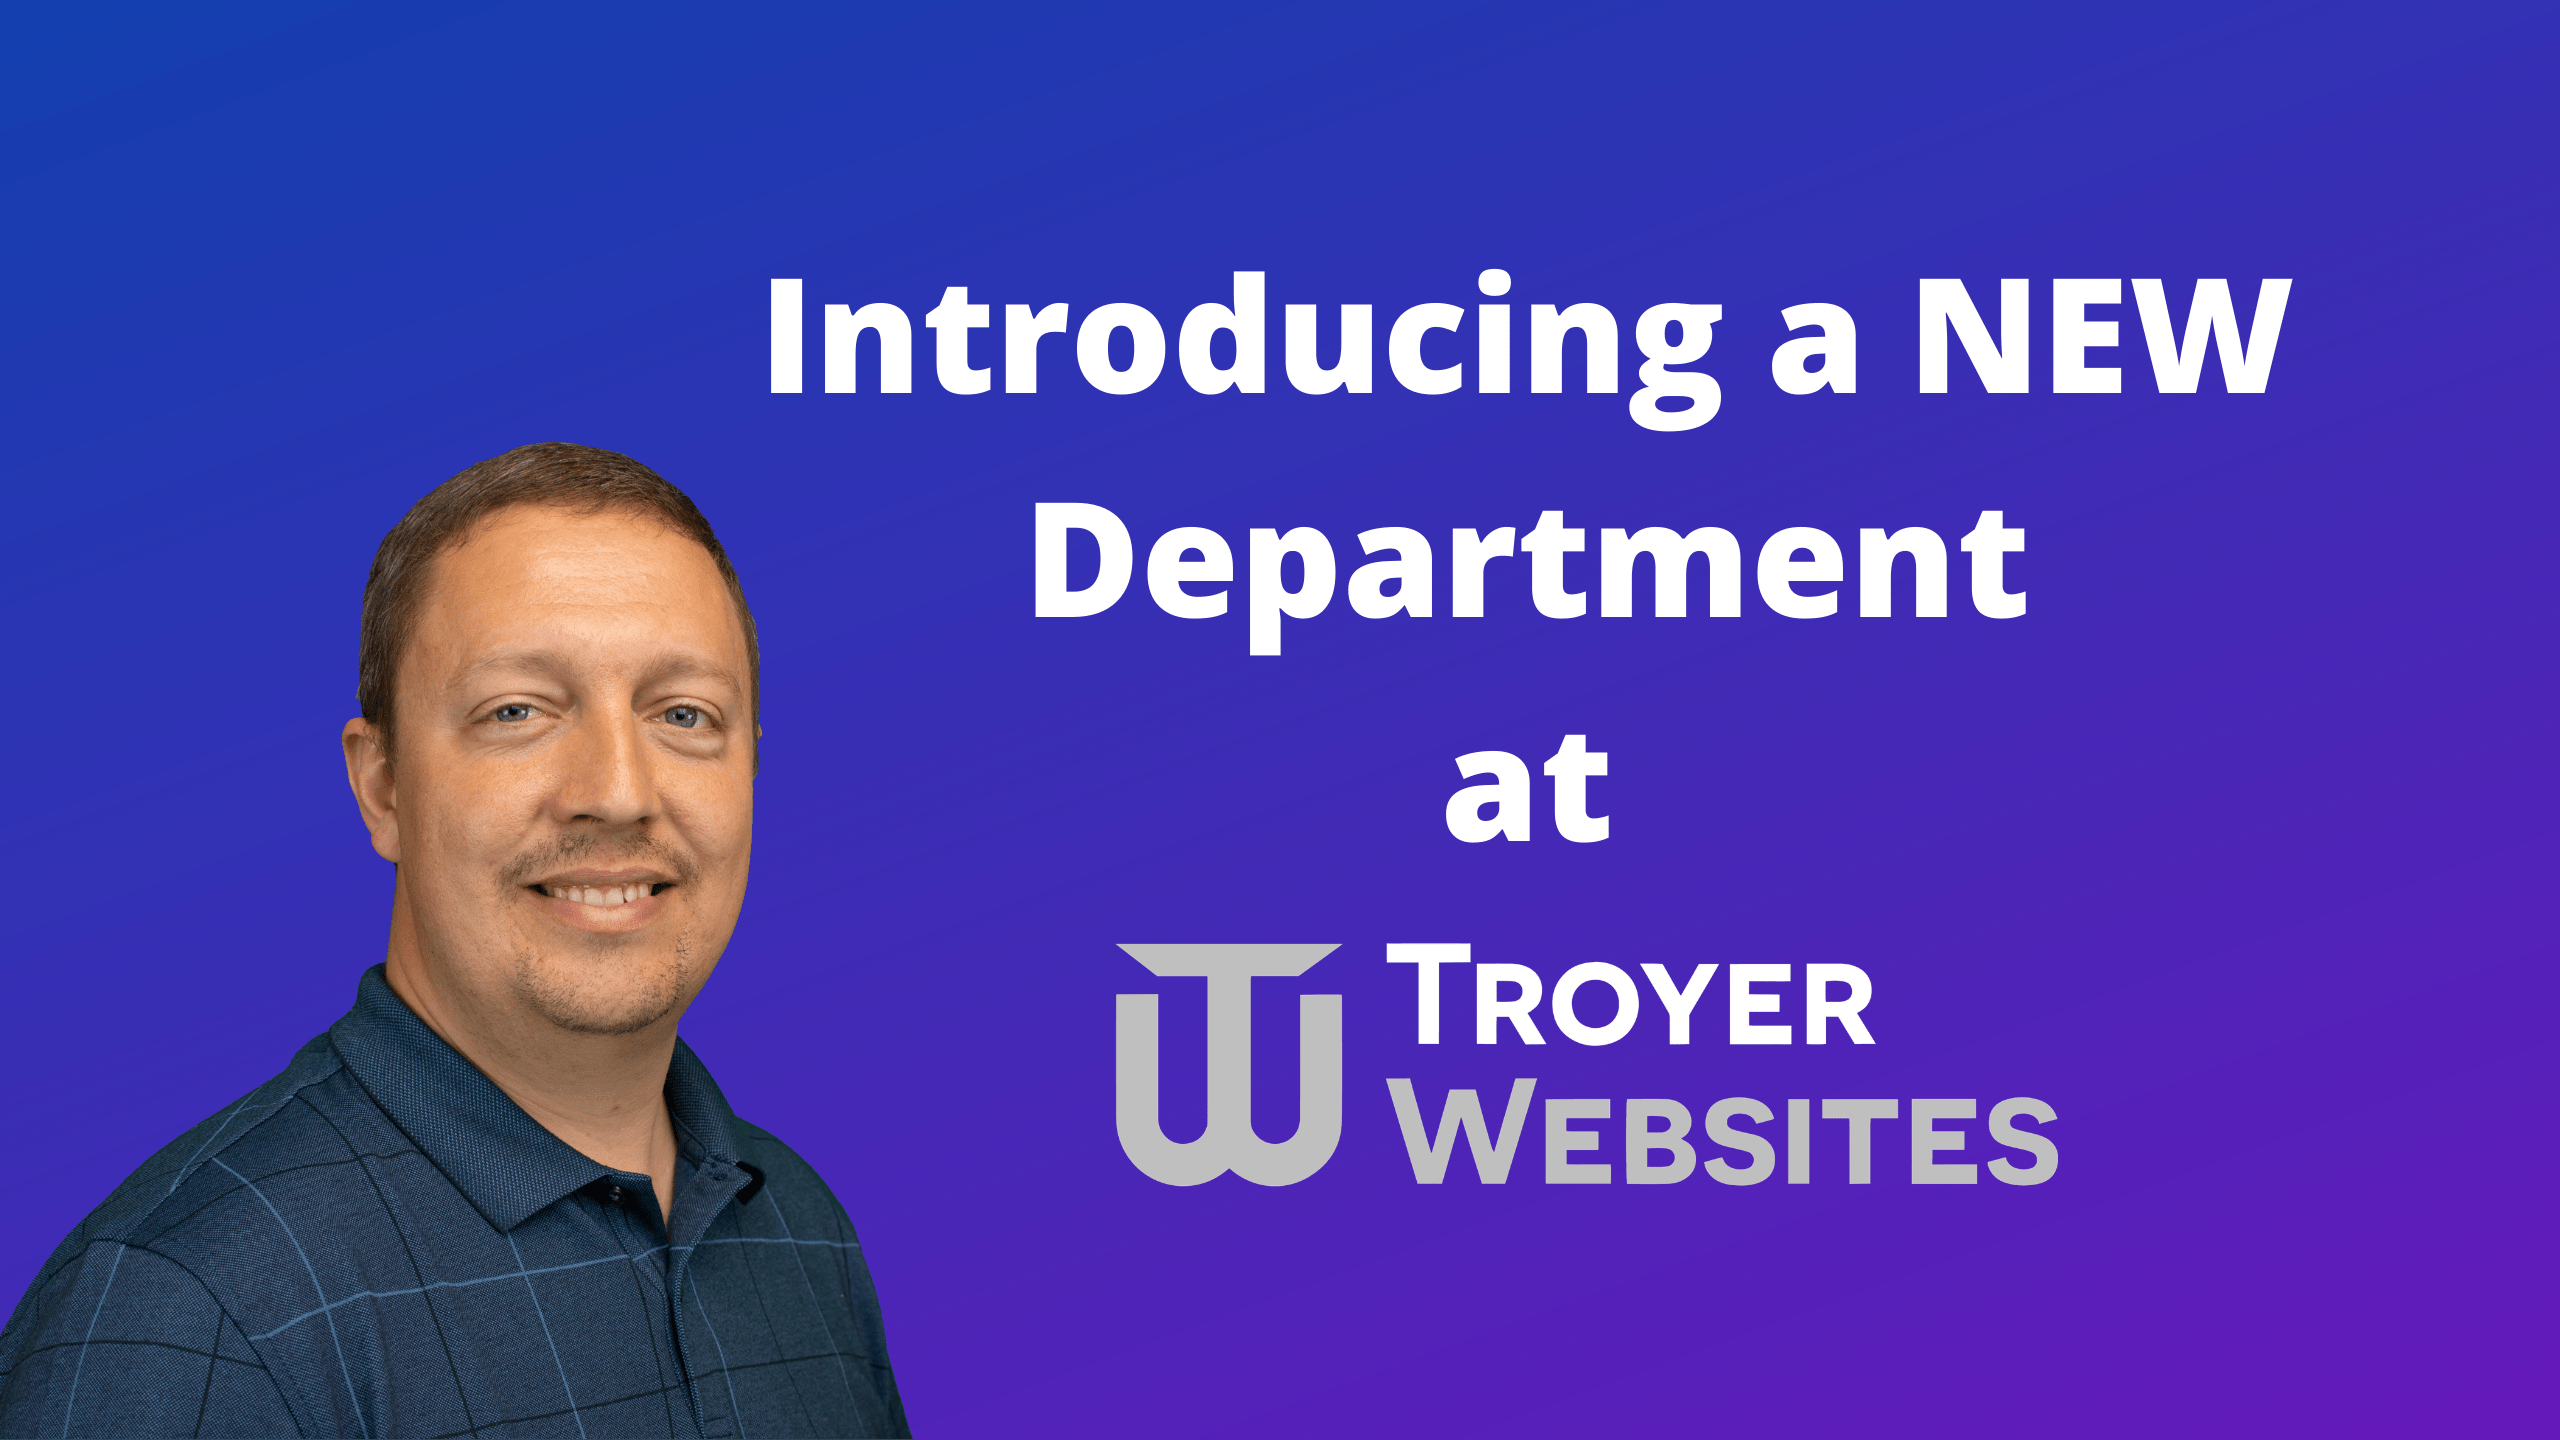 Introducing a NEW Department